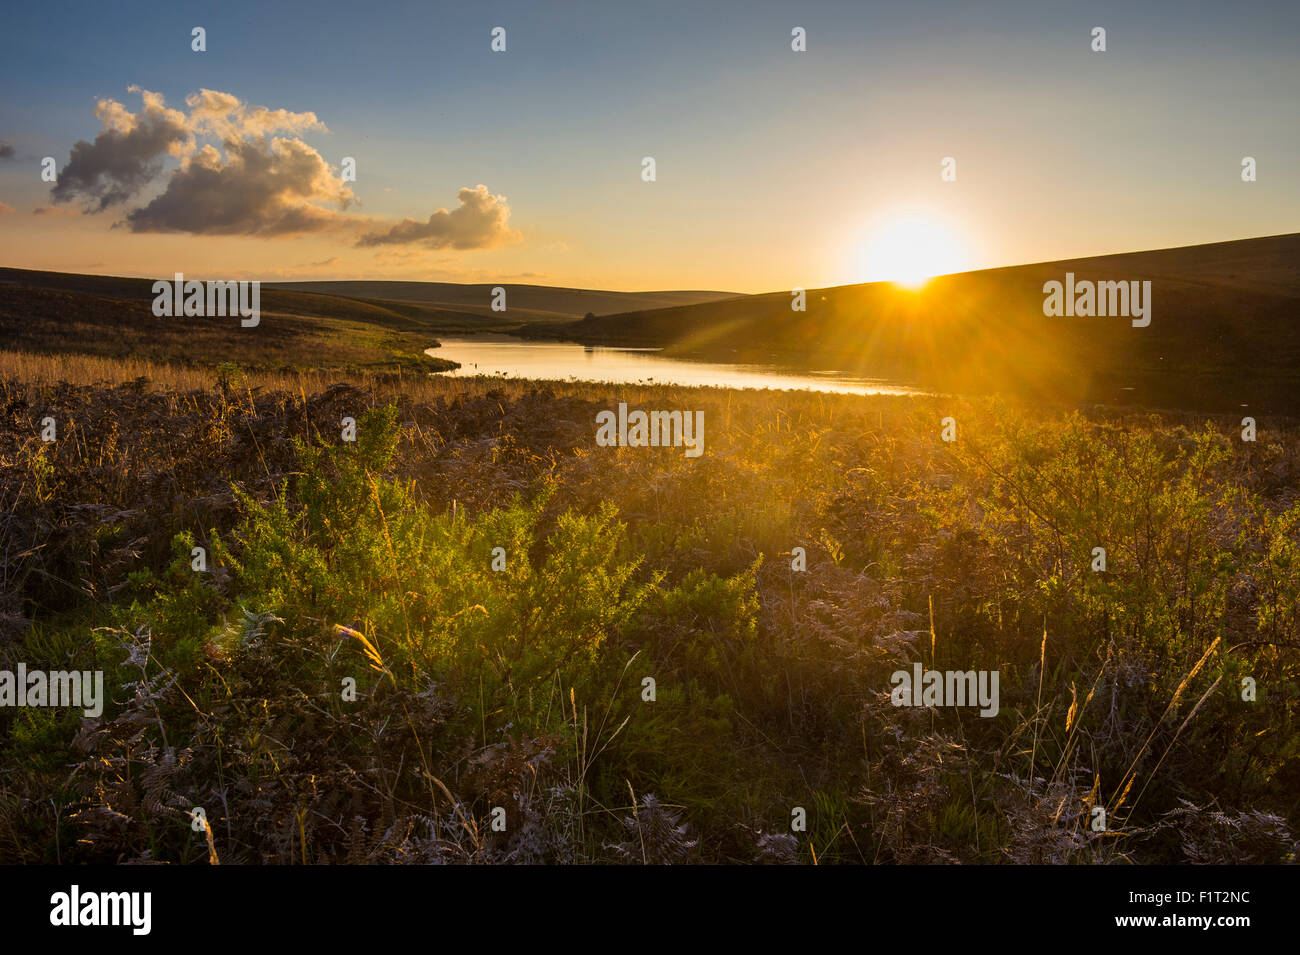 Little lake at sunset, Nyika National Park, Malawi, Africa - Stock Image